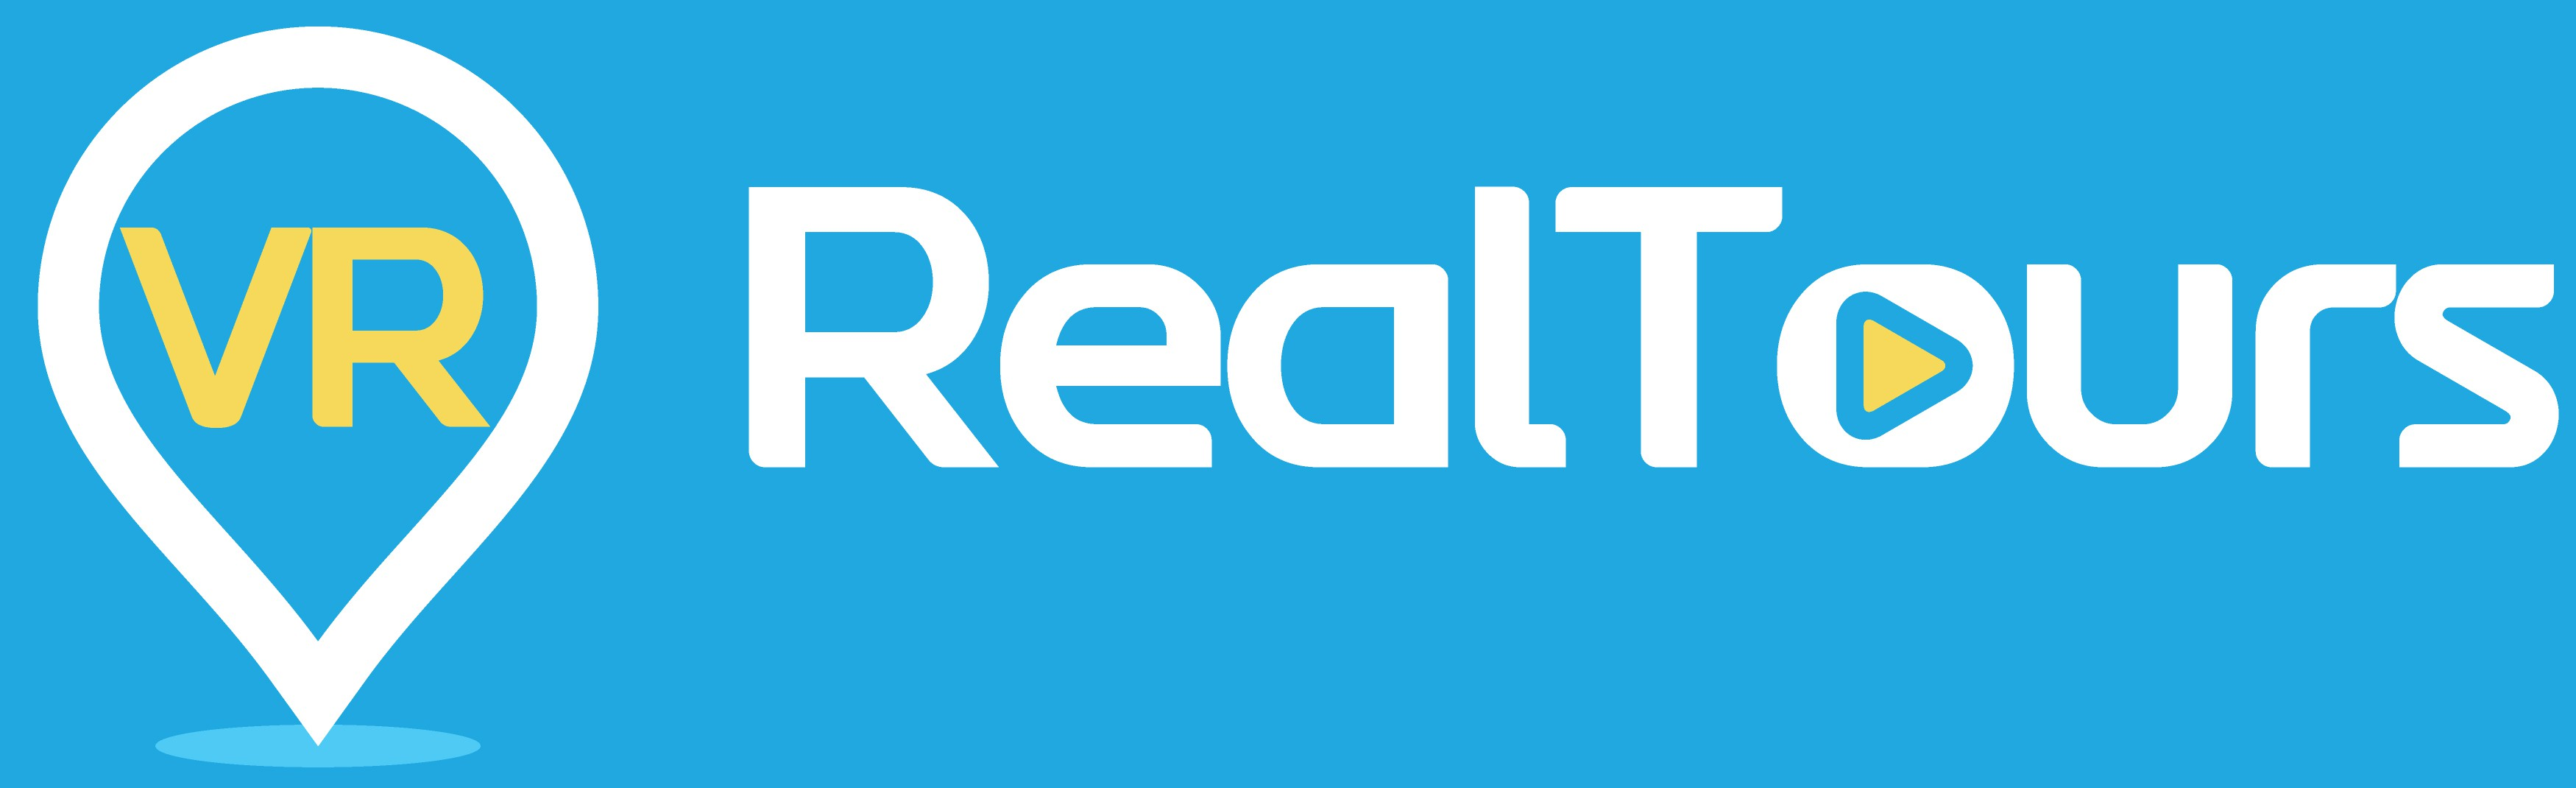 Design a sleek and clever logo for VR Real Tours